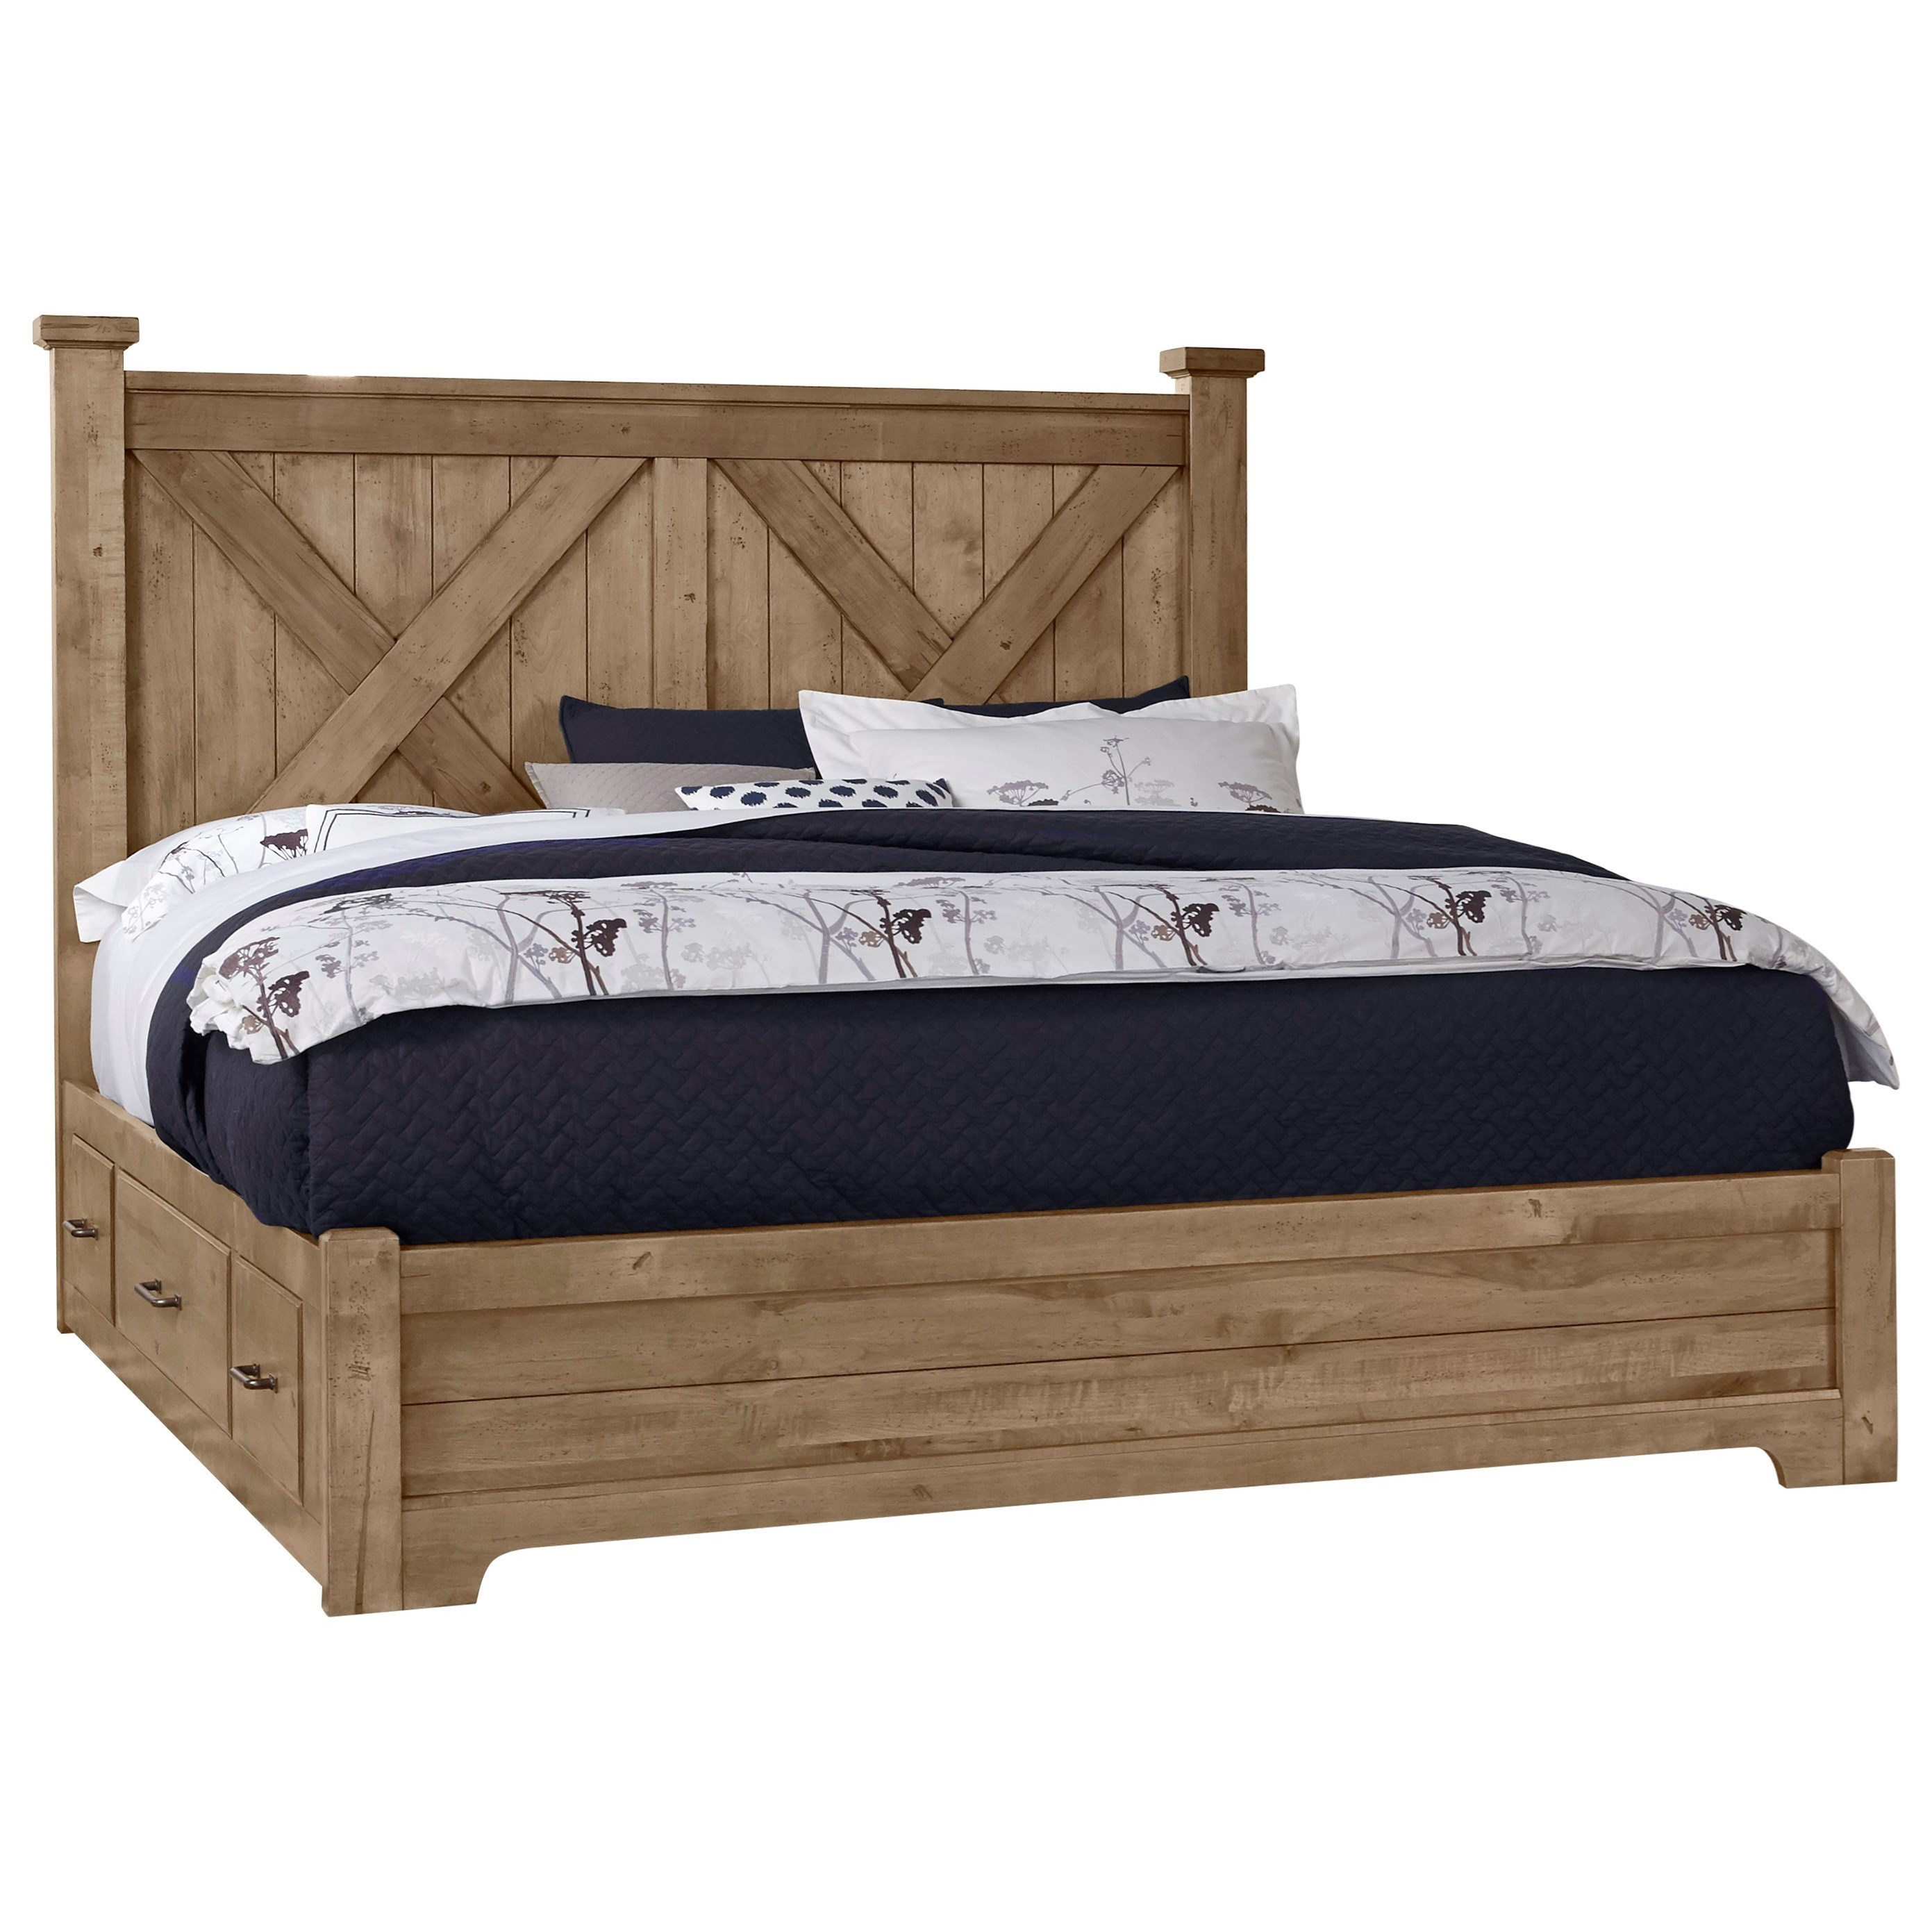 King X Bed With Double Side Storage